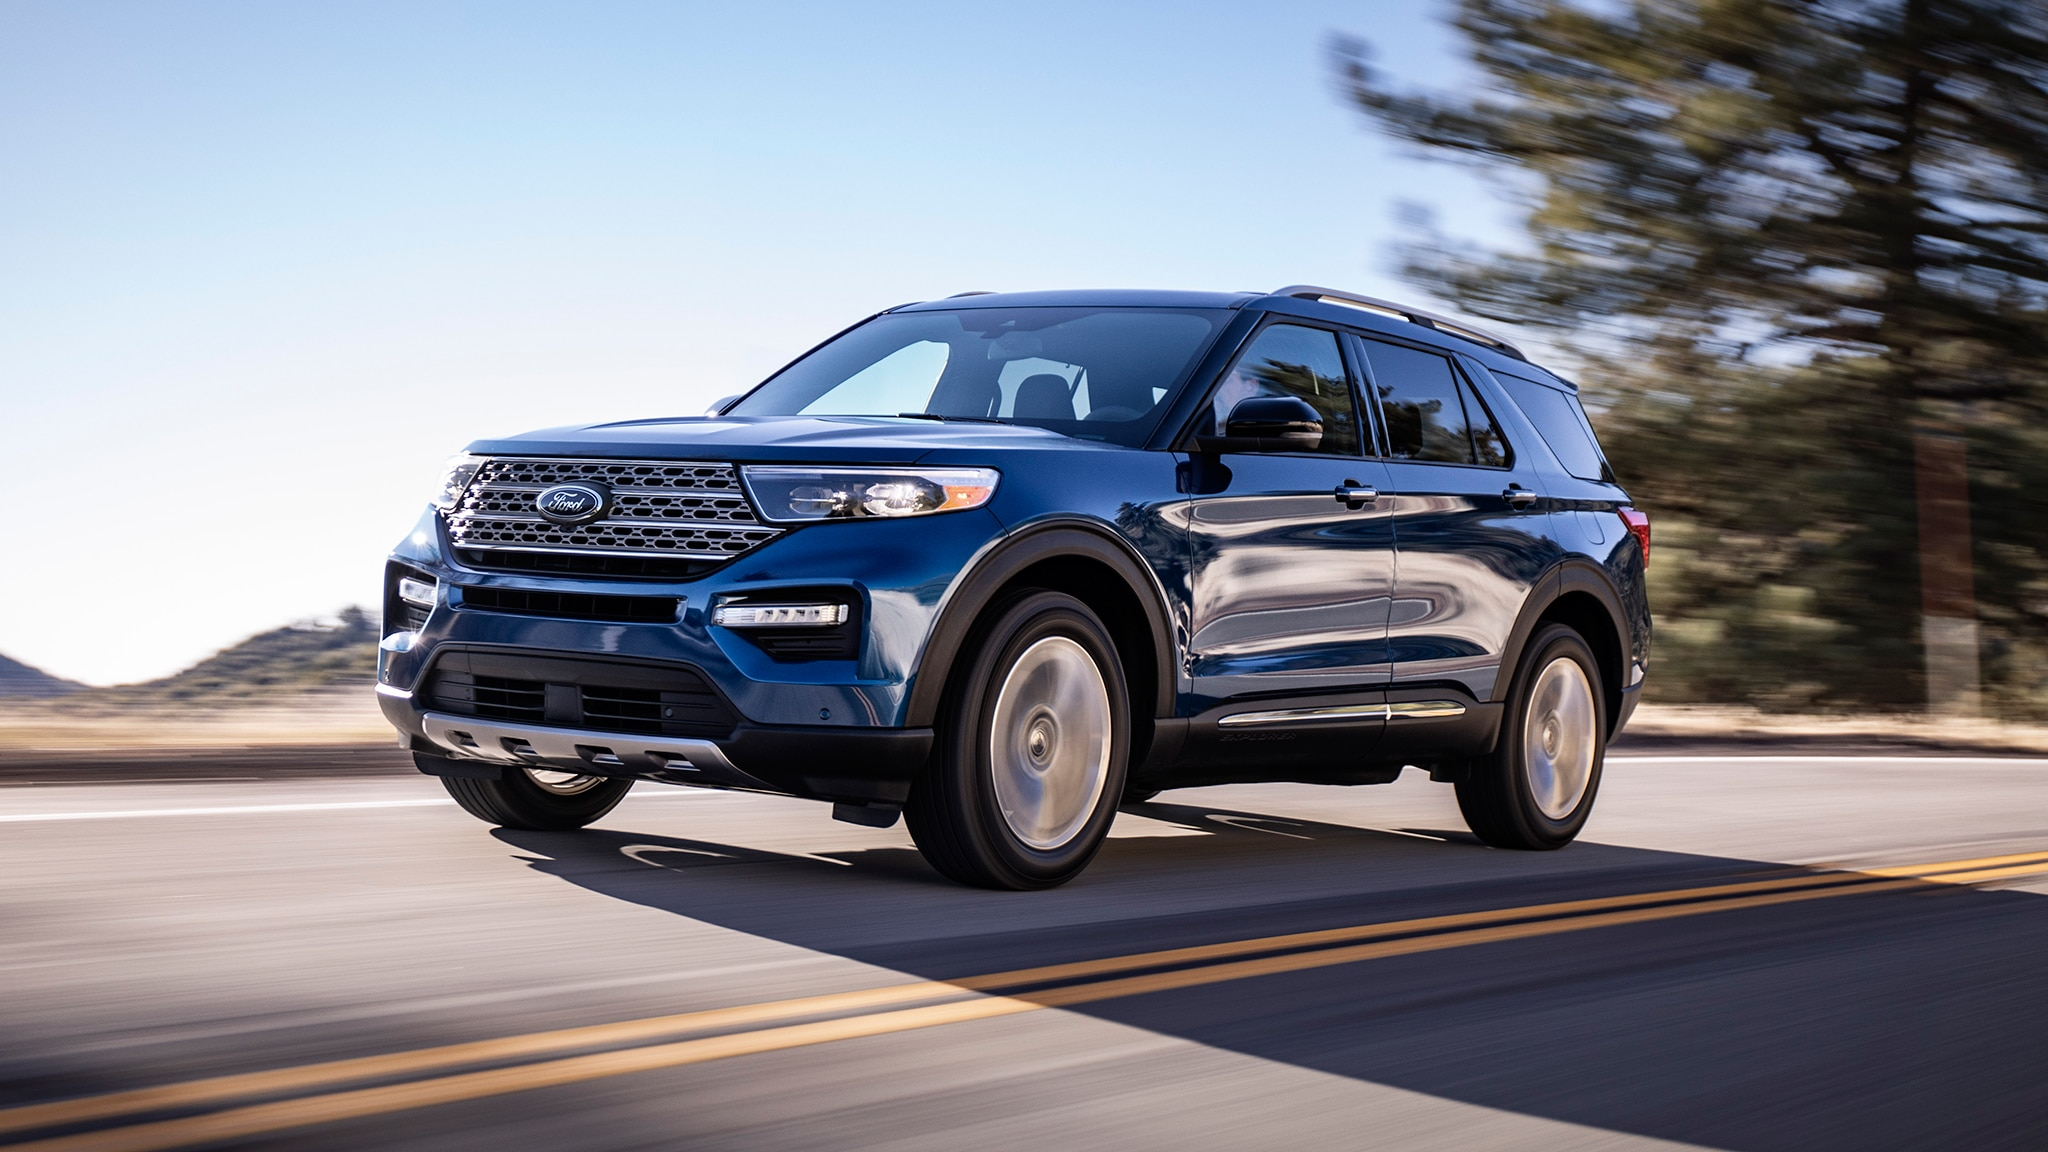 Ford Explorer 2017 Lease >> Ford Fusion Hybrid Reviews: Research New & Used Models | Motortrend